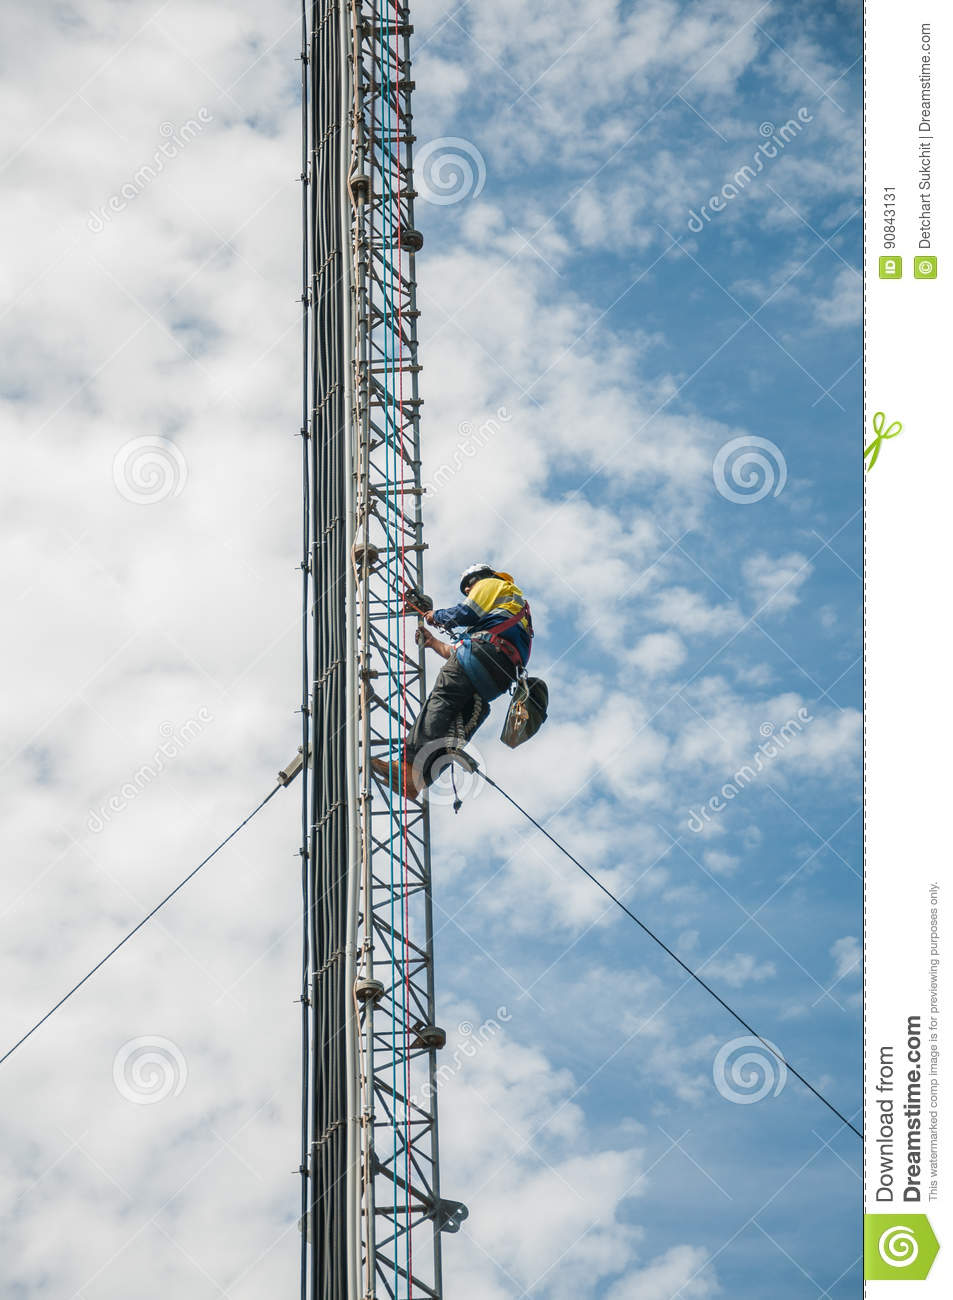 Tower Climber Stock Image Image Of Danger Blue Male 90843131